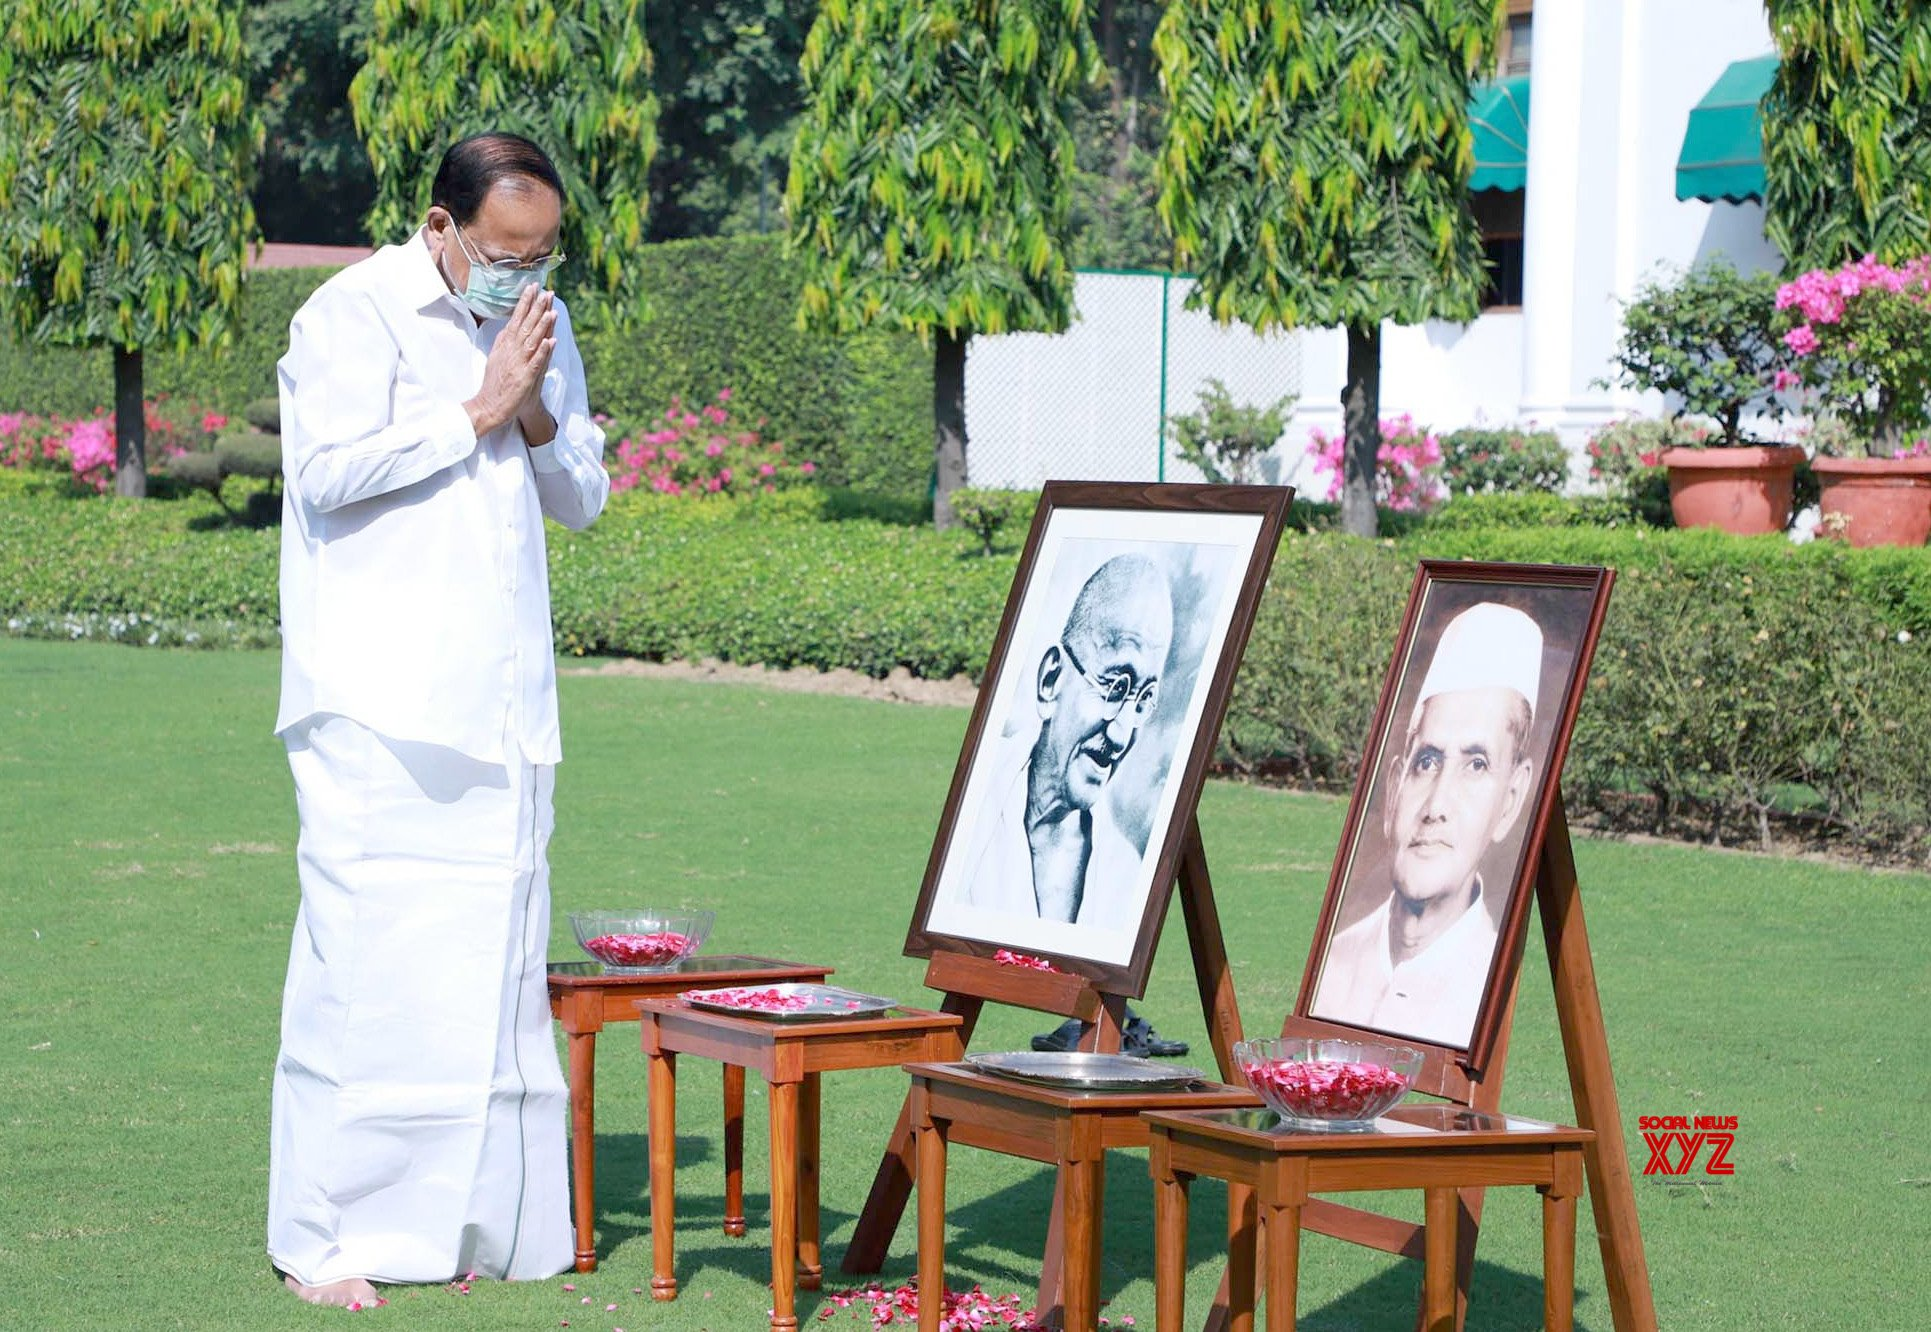 New Delhi: Venkaiah Naidu pays homage to the father of the nation Mahatma Gandhi and the former Prime Minister Lal Bahadur Shastri on their birth anniversaries #Gallery